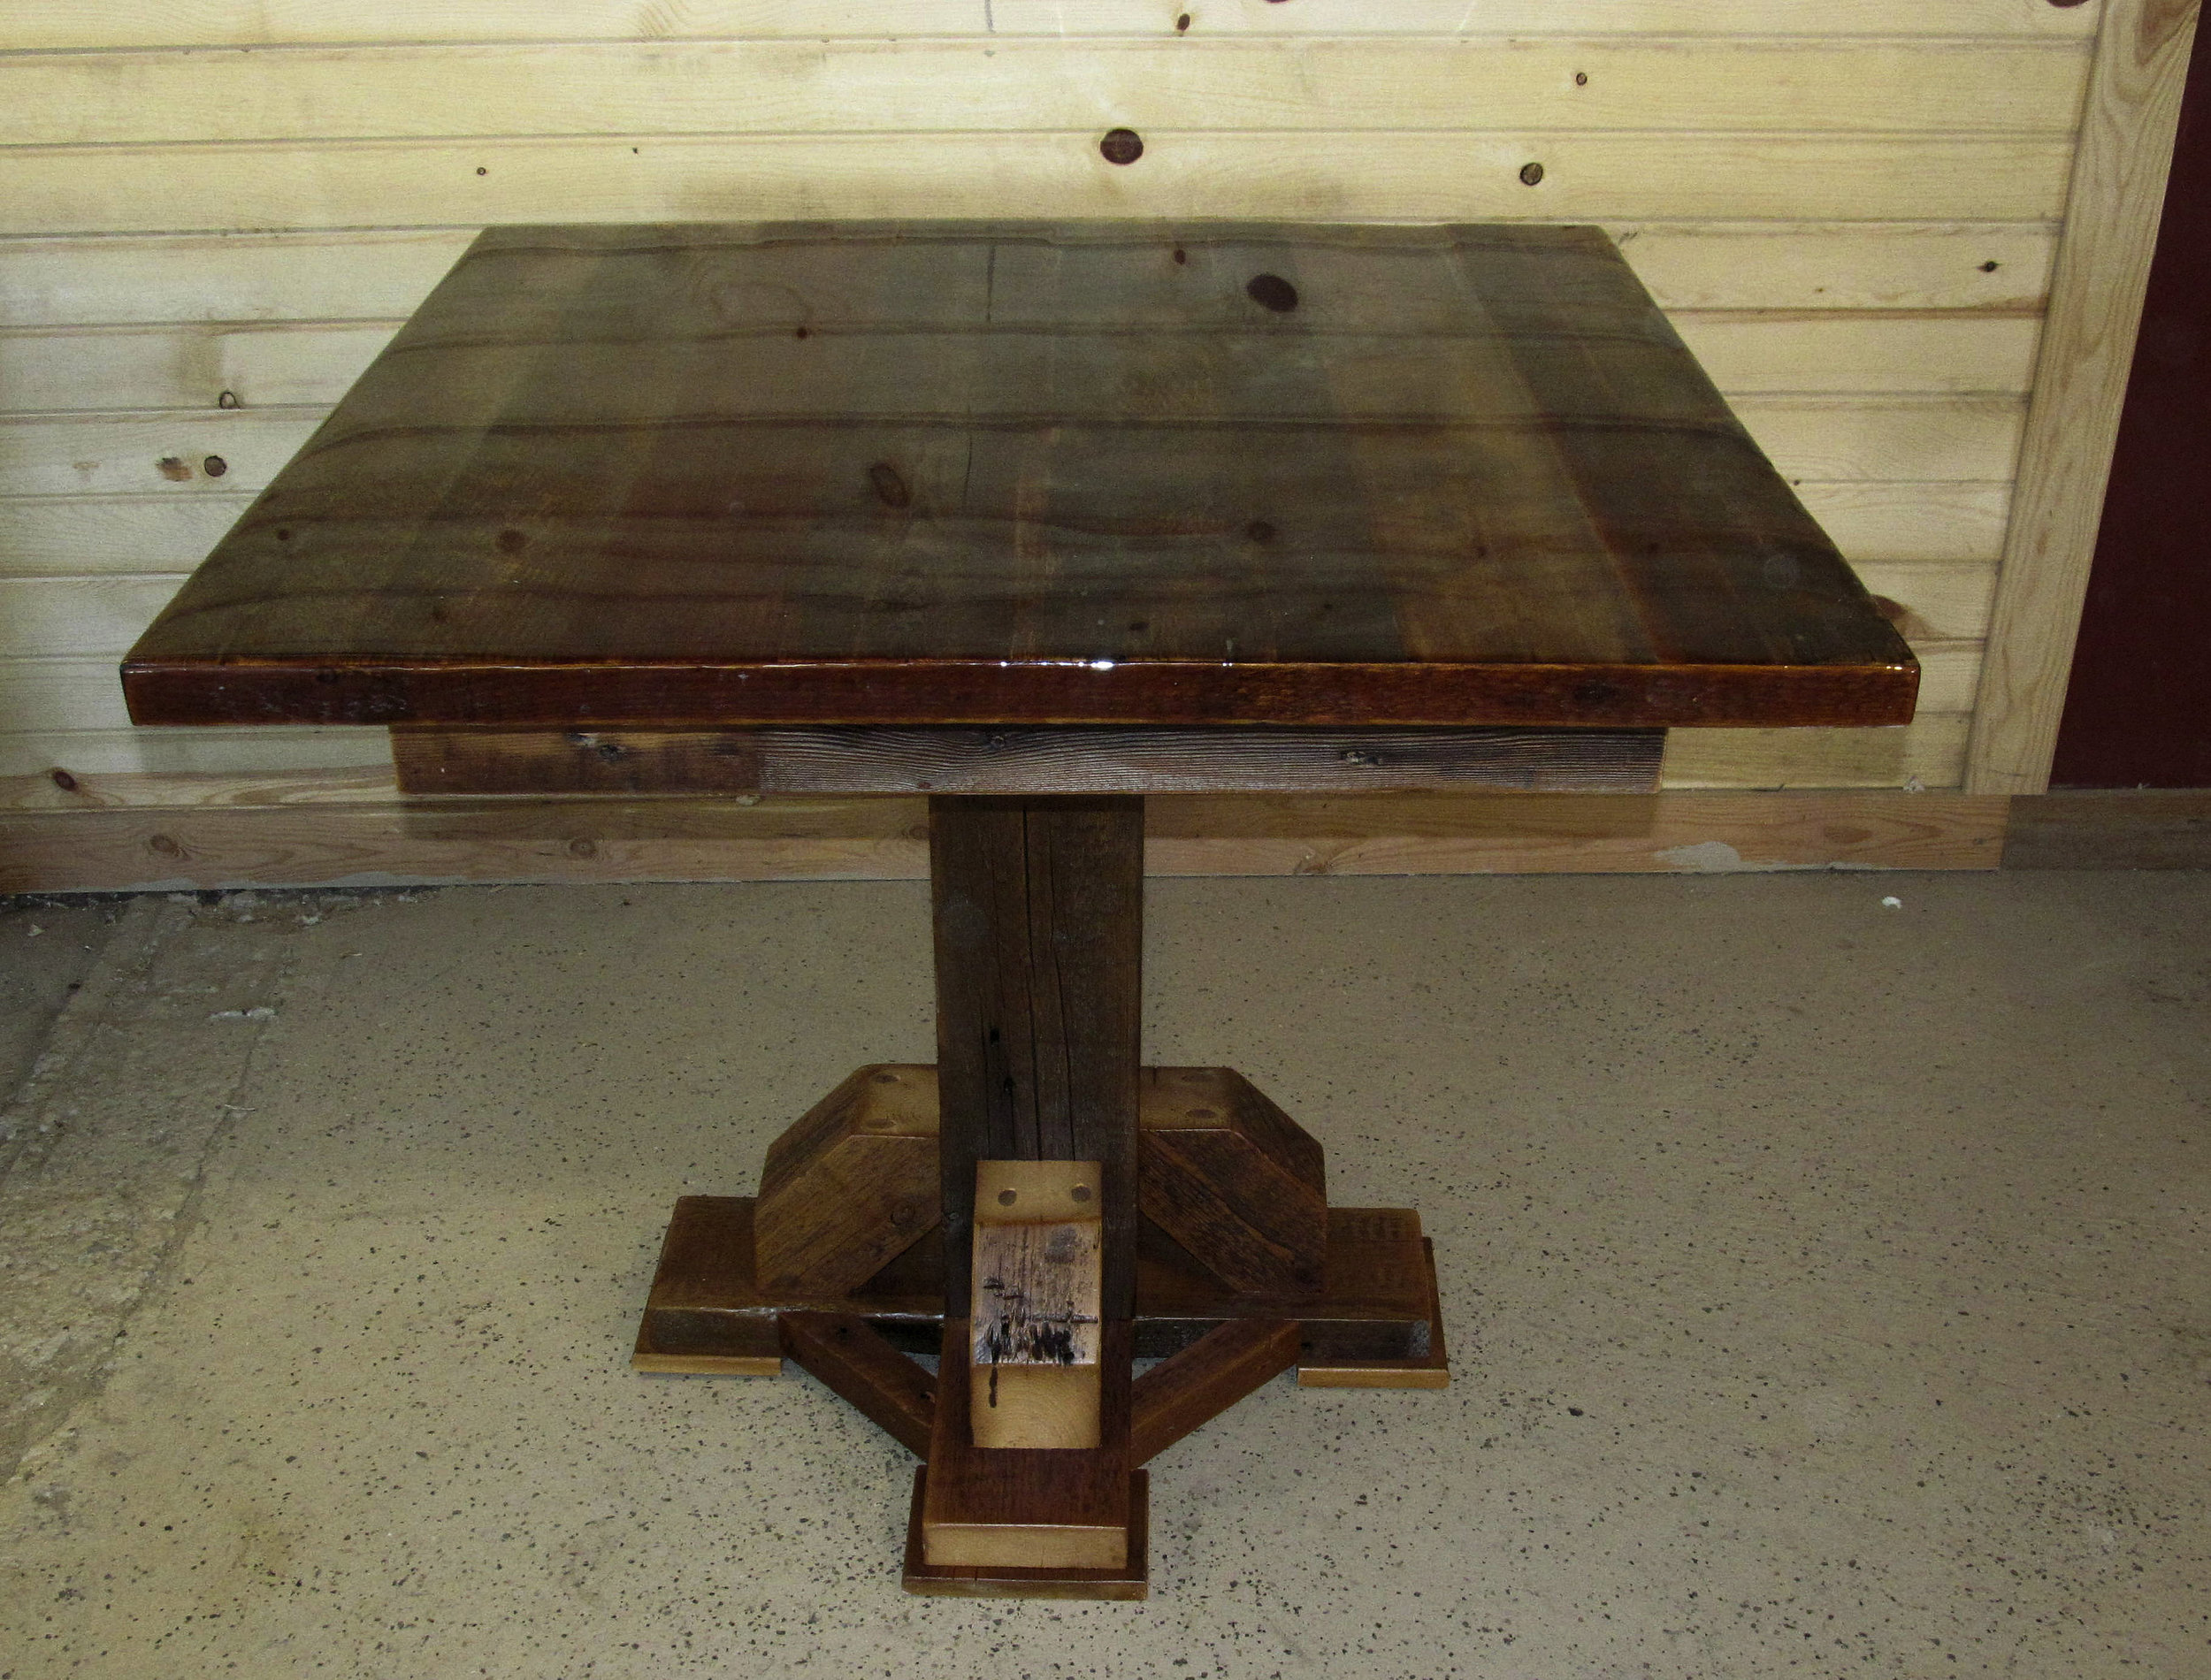 rusticraft restanrant table small square.jpg